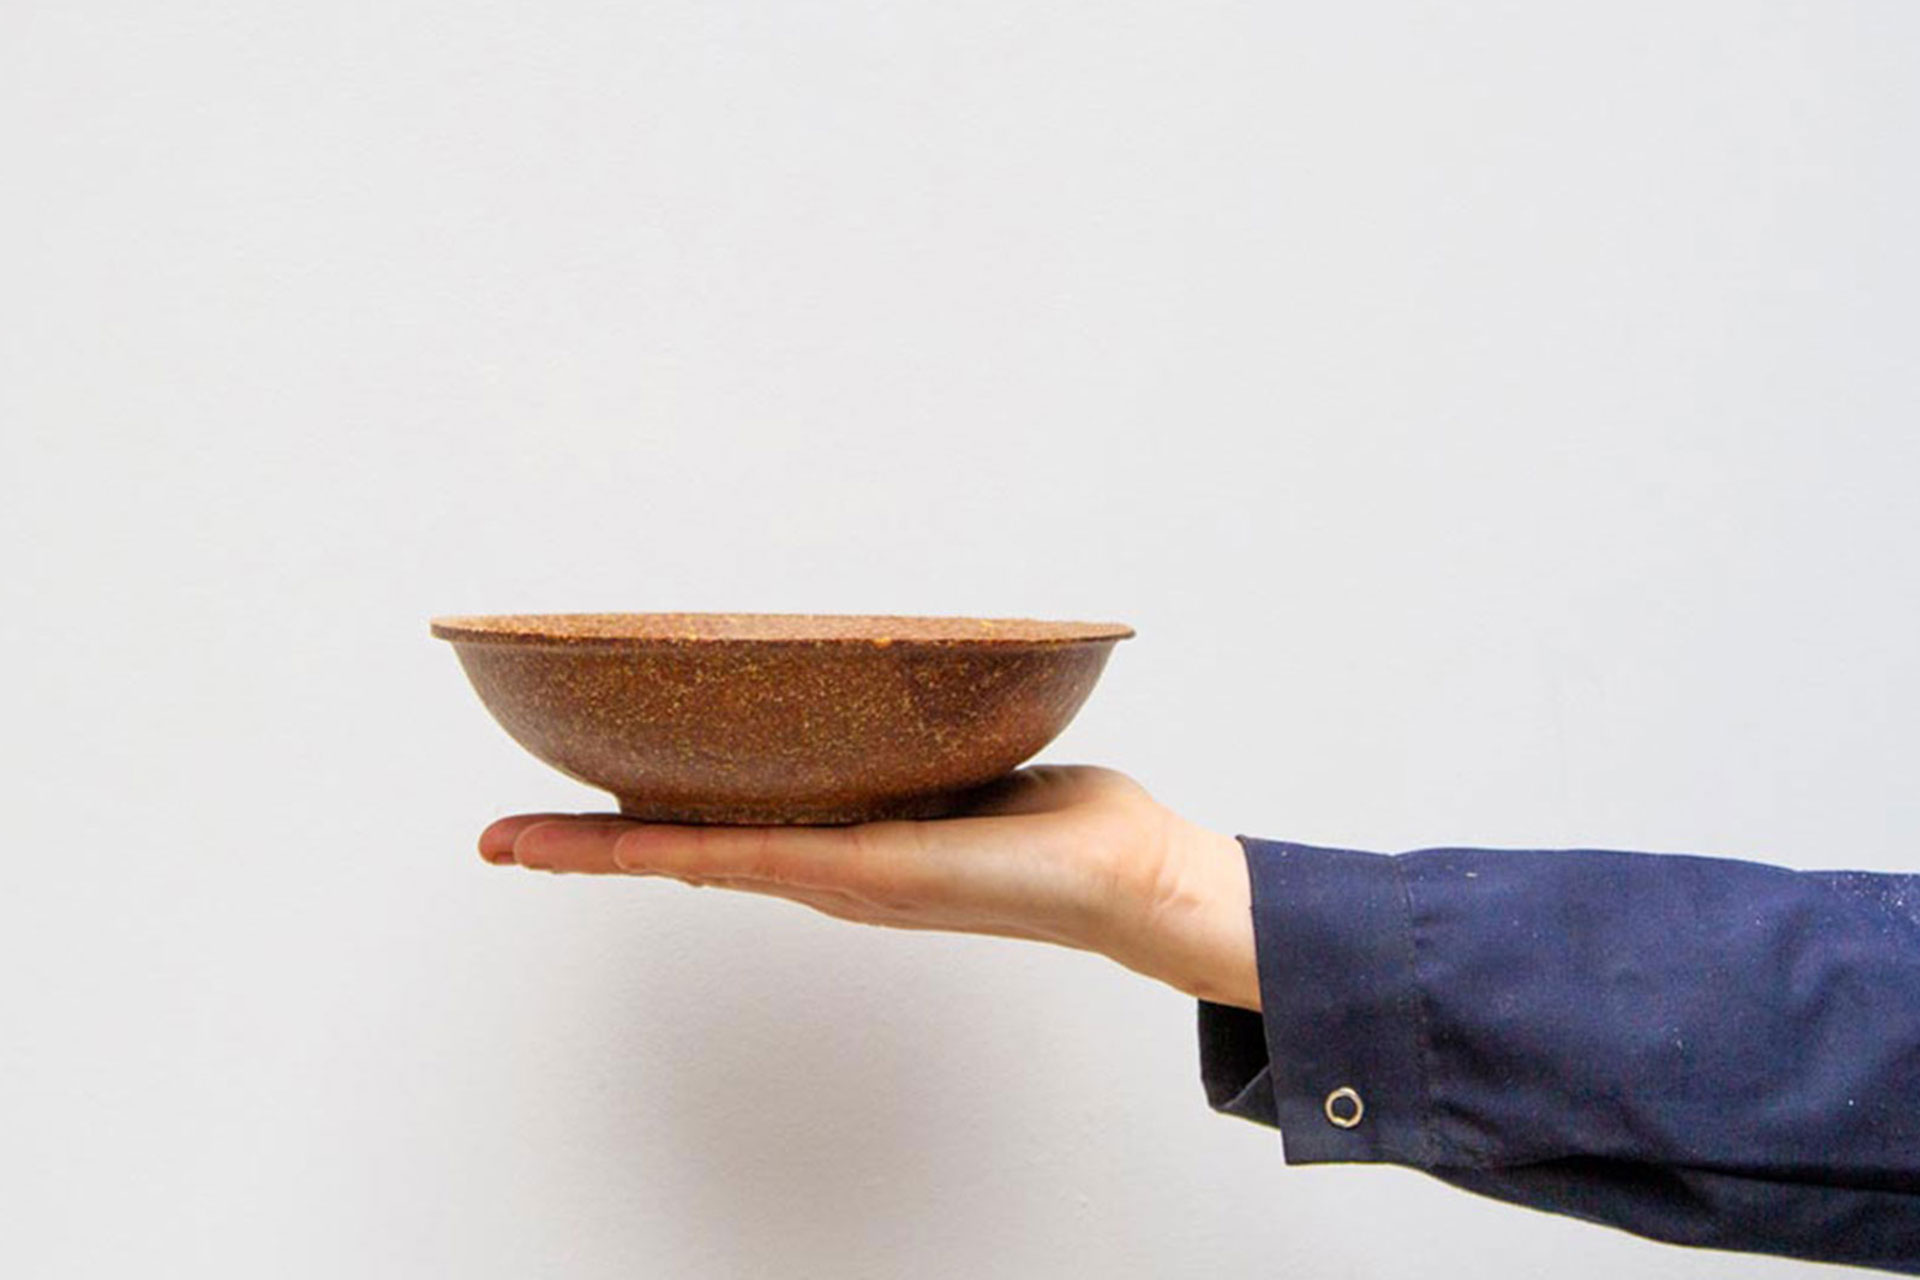 A hand holding a biodegradable bowl